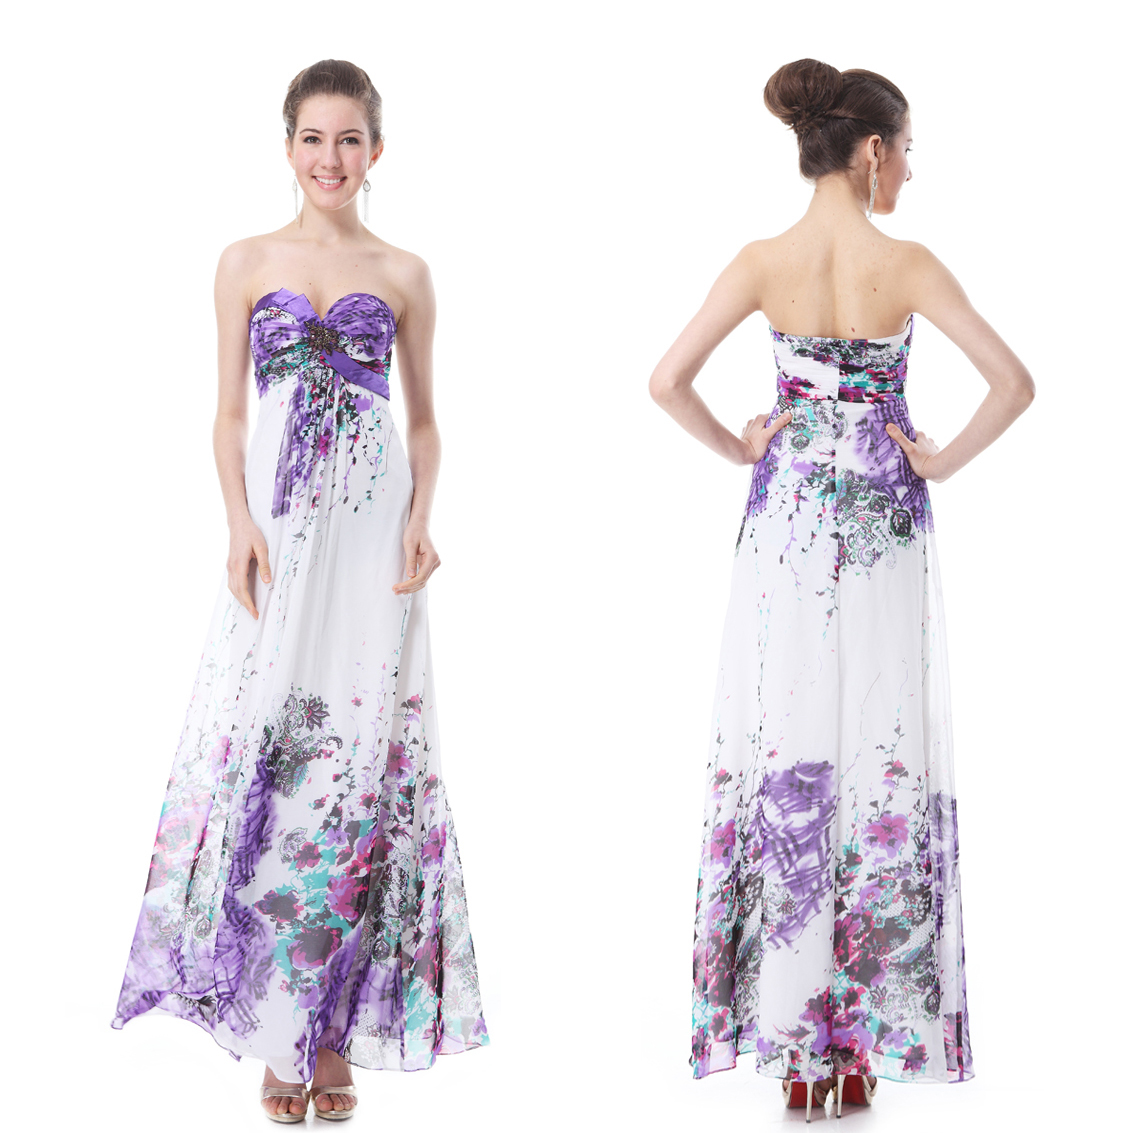 Ladies-New-Printed-Chiffon-Maxi-Long-Evening-Formal-Party-Dress-09938-Size-8-18